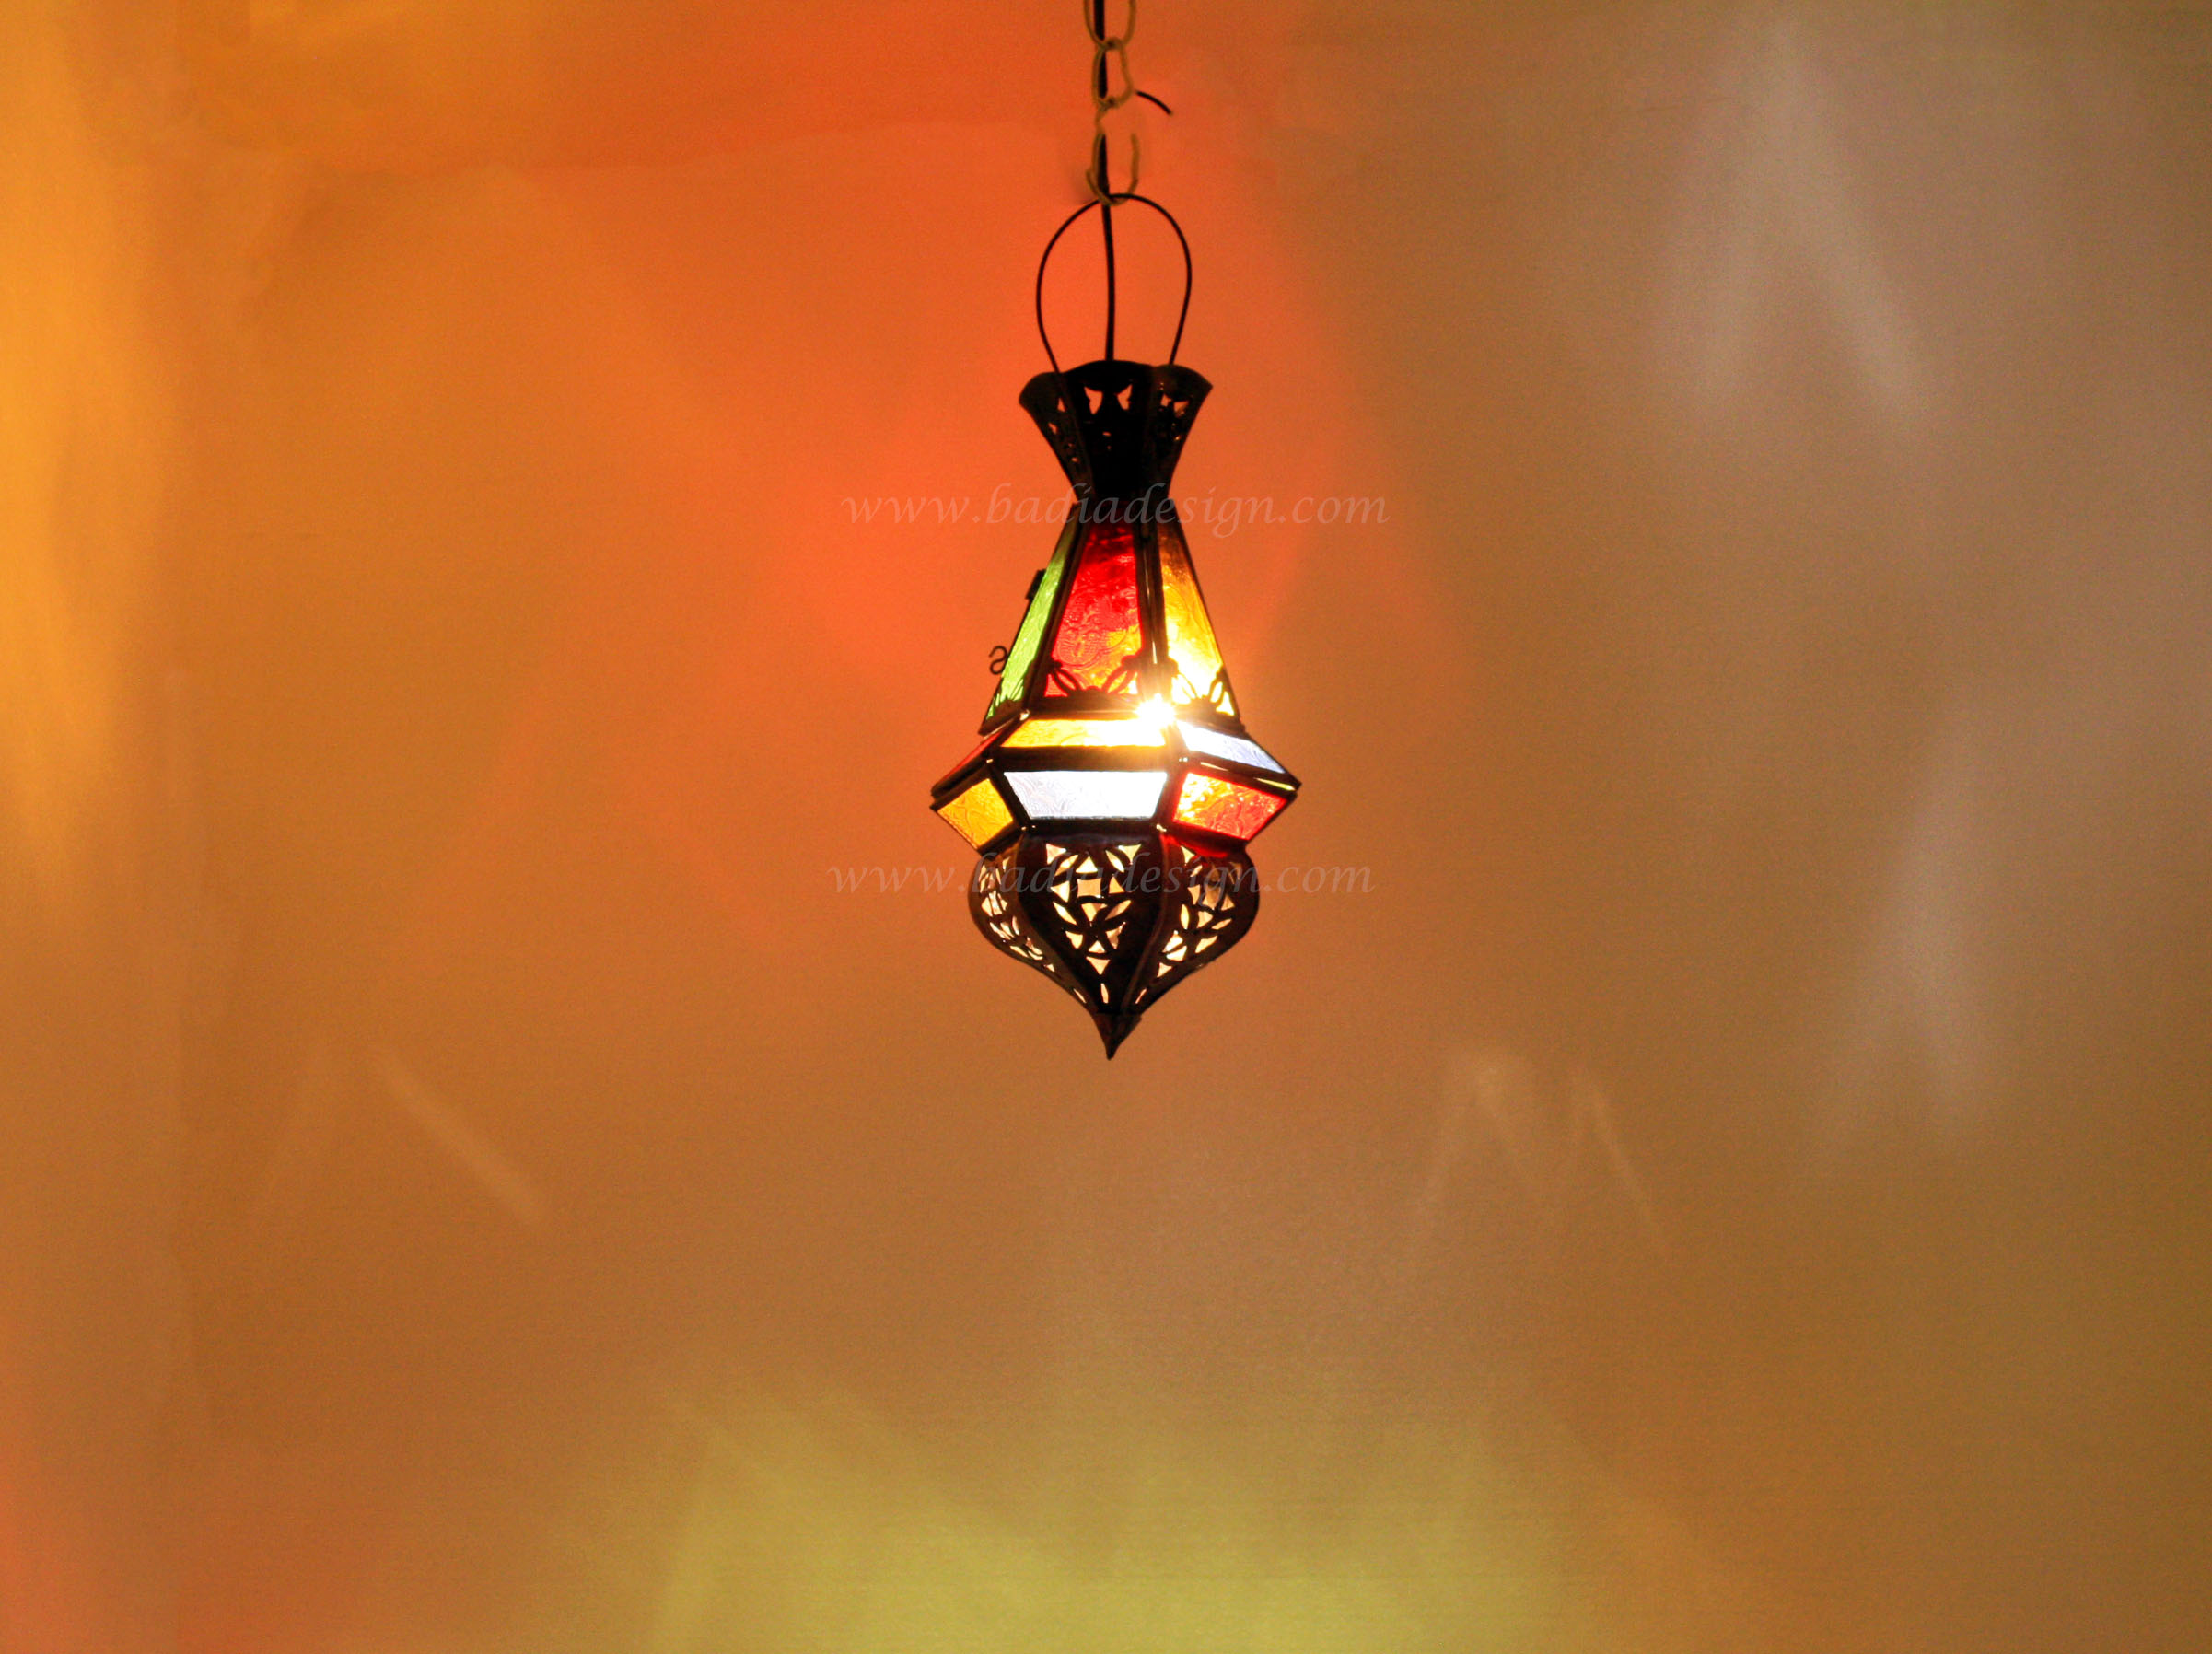 Moroccan lighting virginia beach jpg